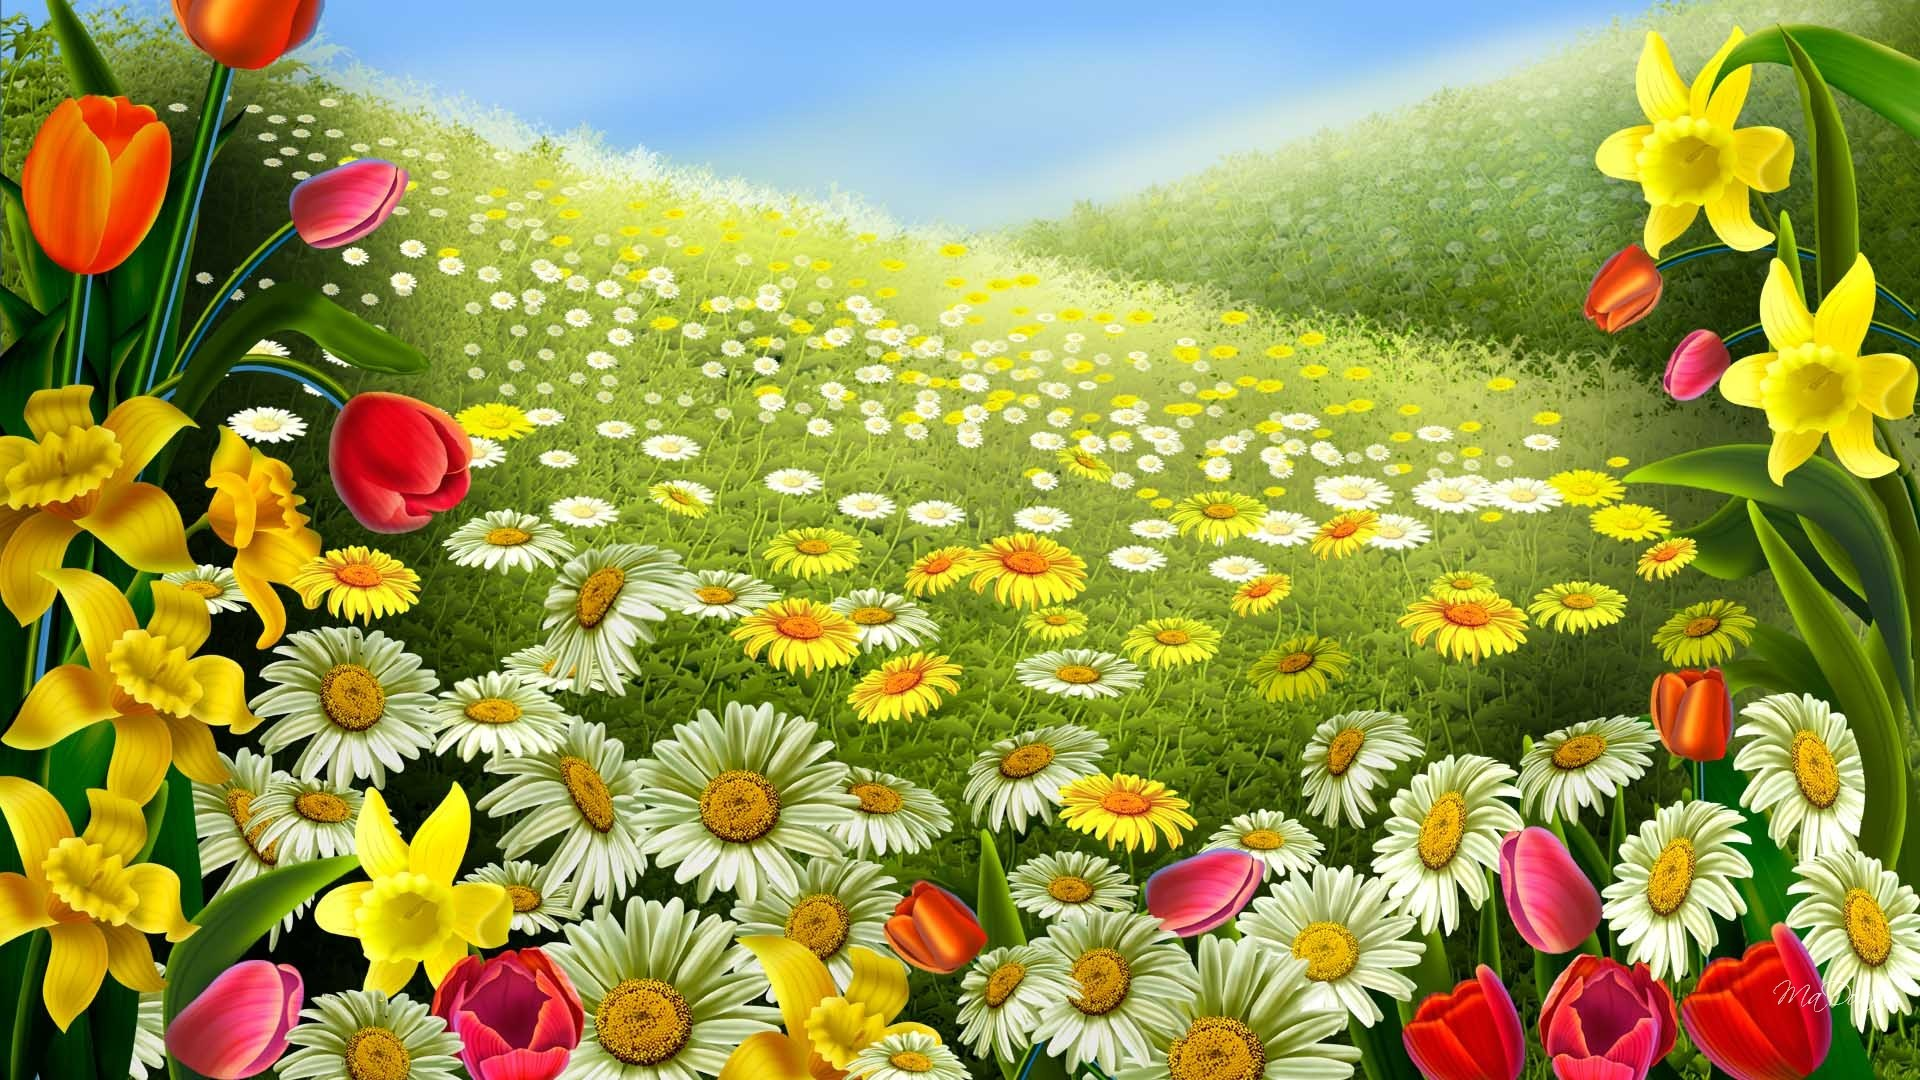 Beautiful Pictures of Springtime   Spring Beautiful Flowers Wallpaper    Free Desk Wallpapers